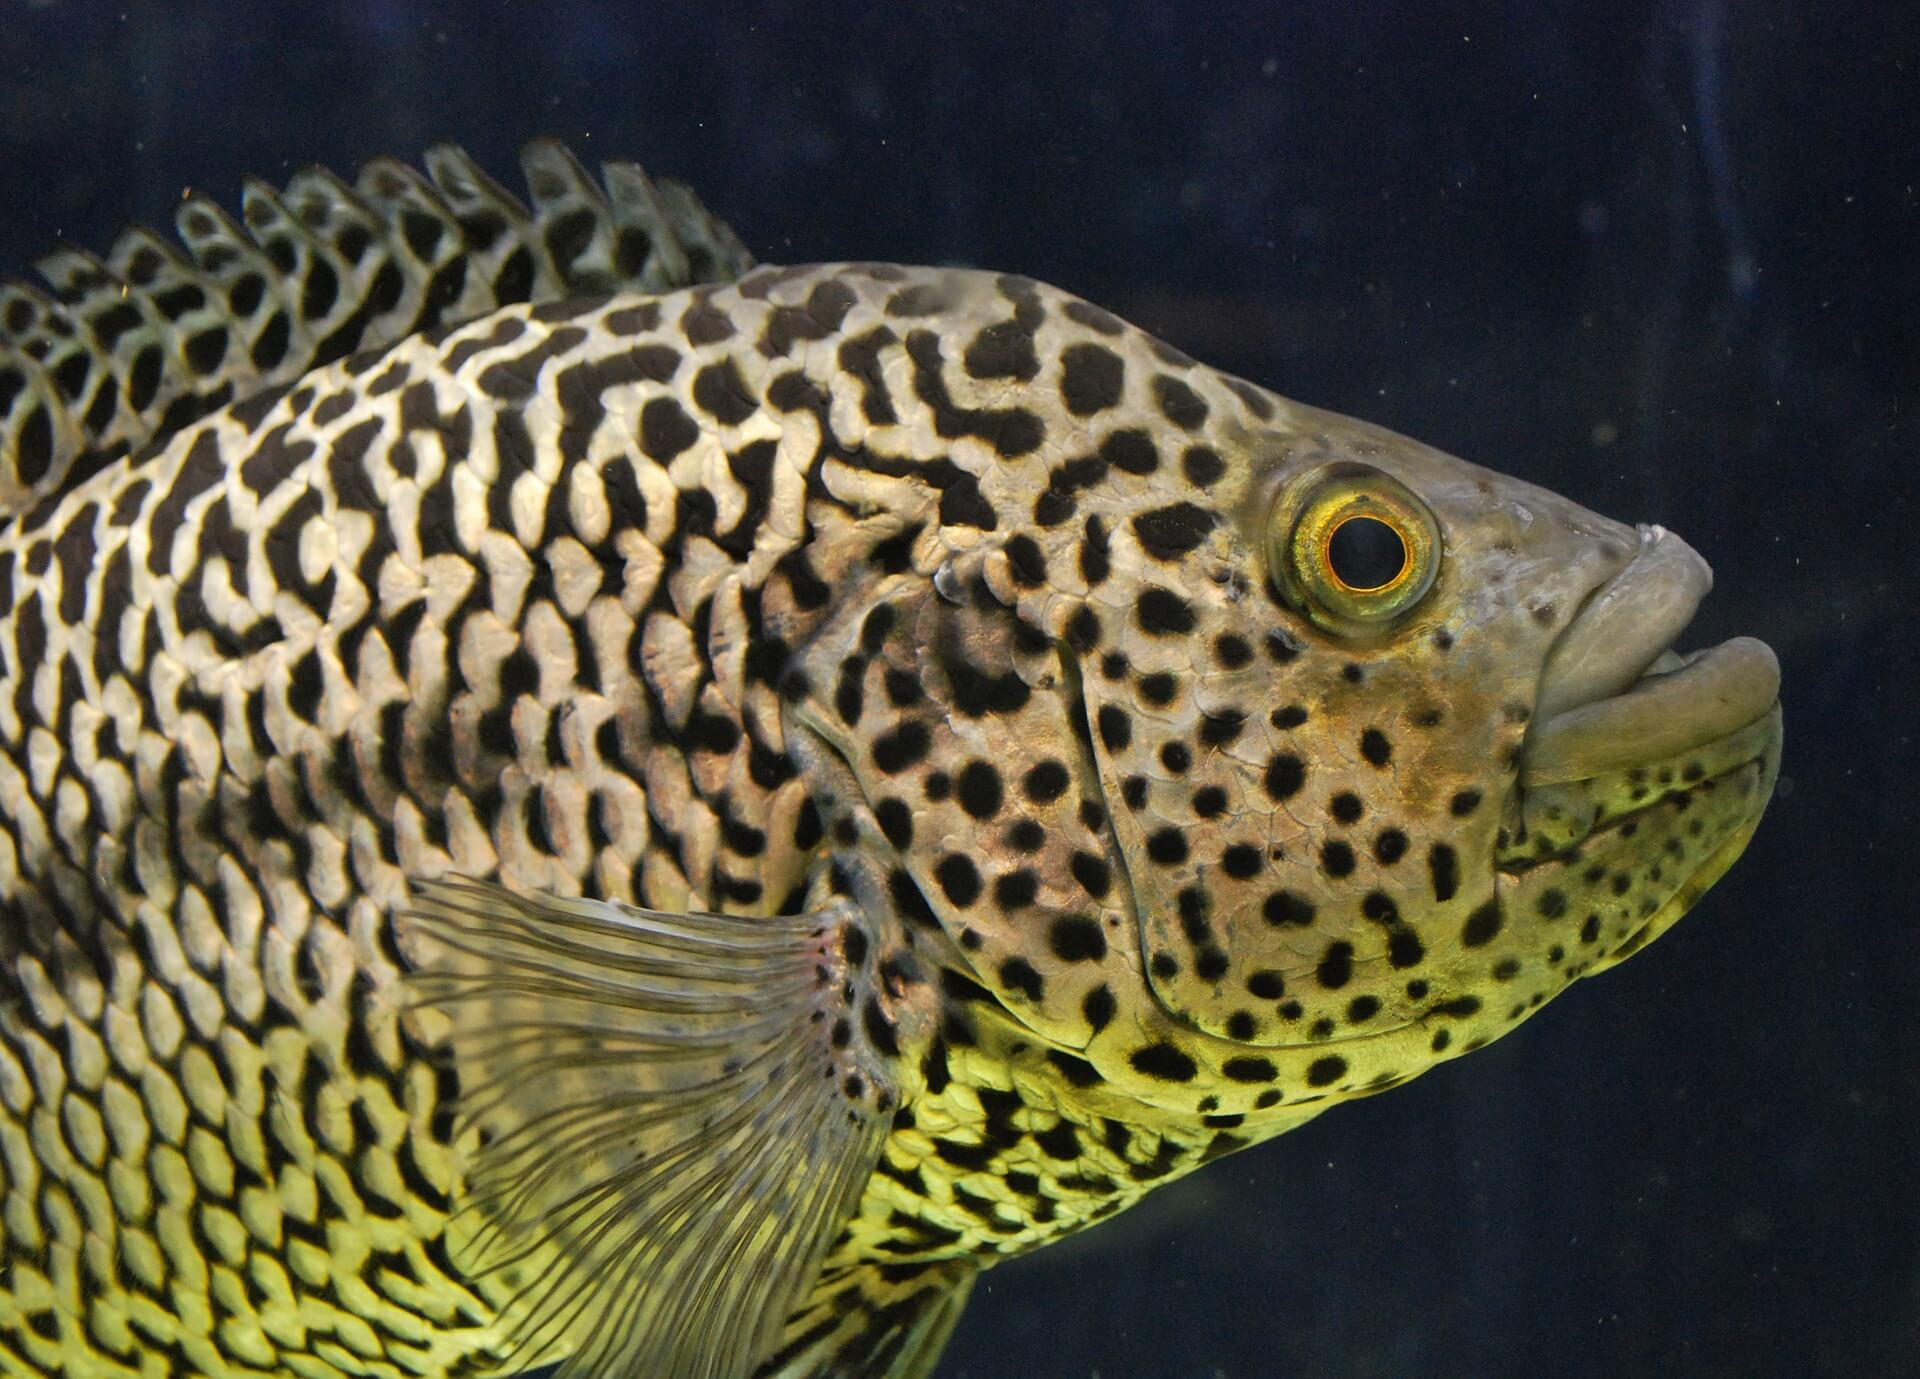 8 Facts That Prove Fish Are Intelligent And Feel Pain